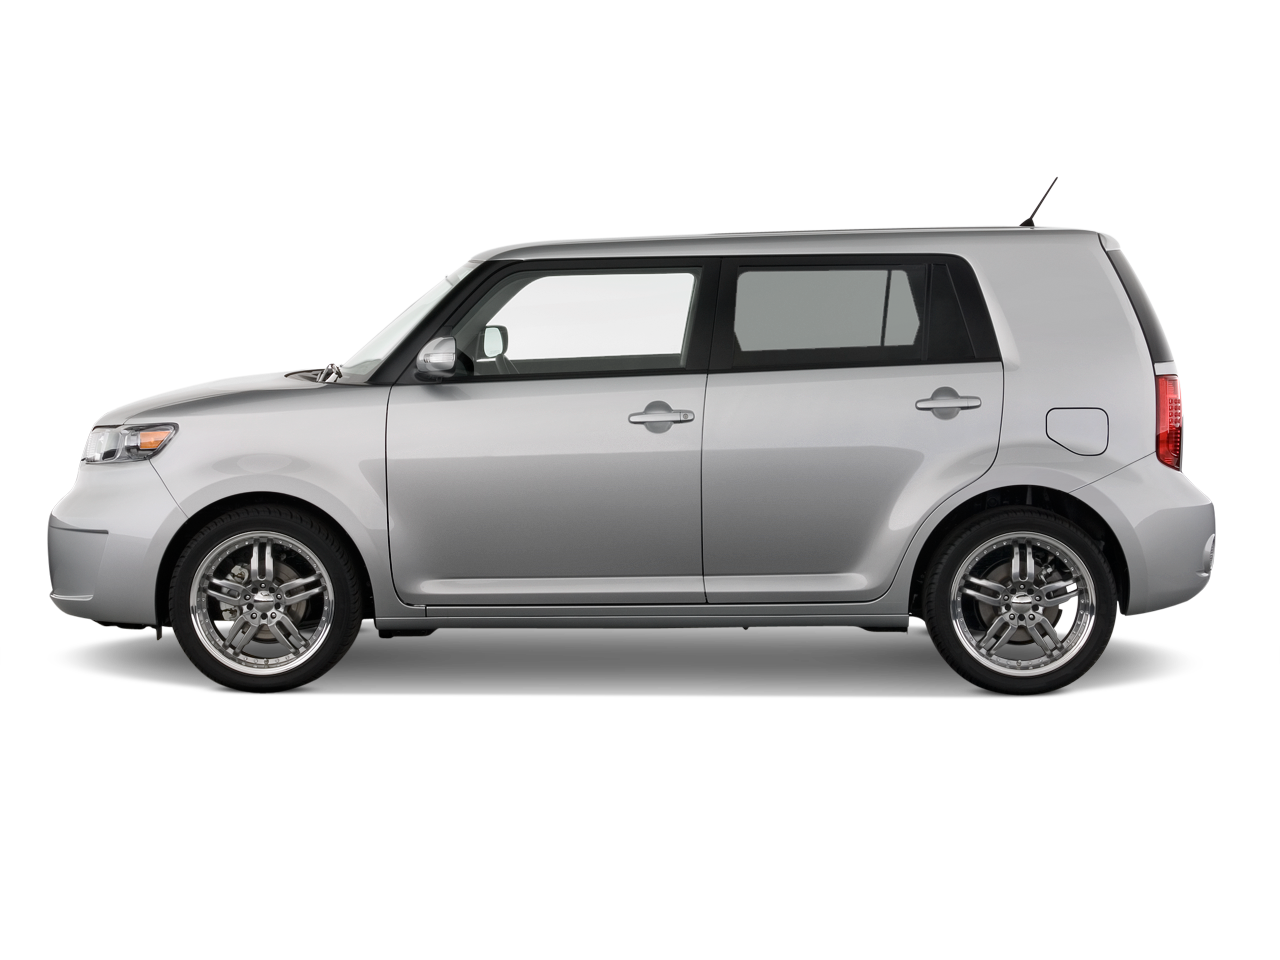 Scion Xb Ii Restyling 2010 2015 Compact Mpv Outstanding Cars 2008 Engine Diagram 4